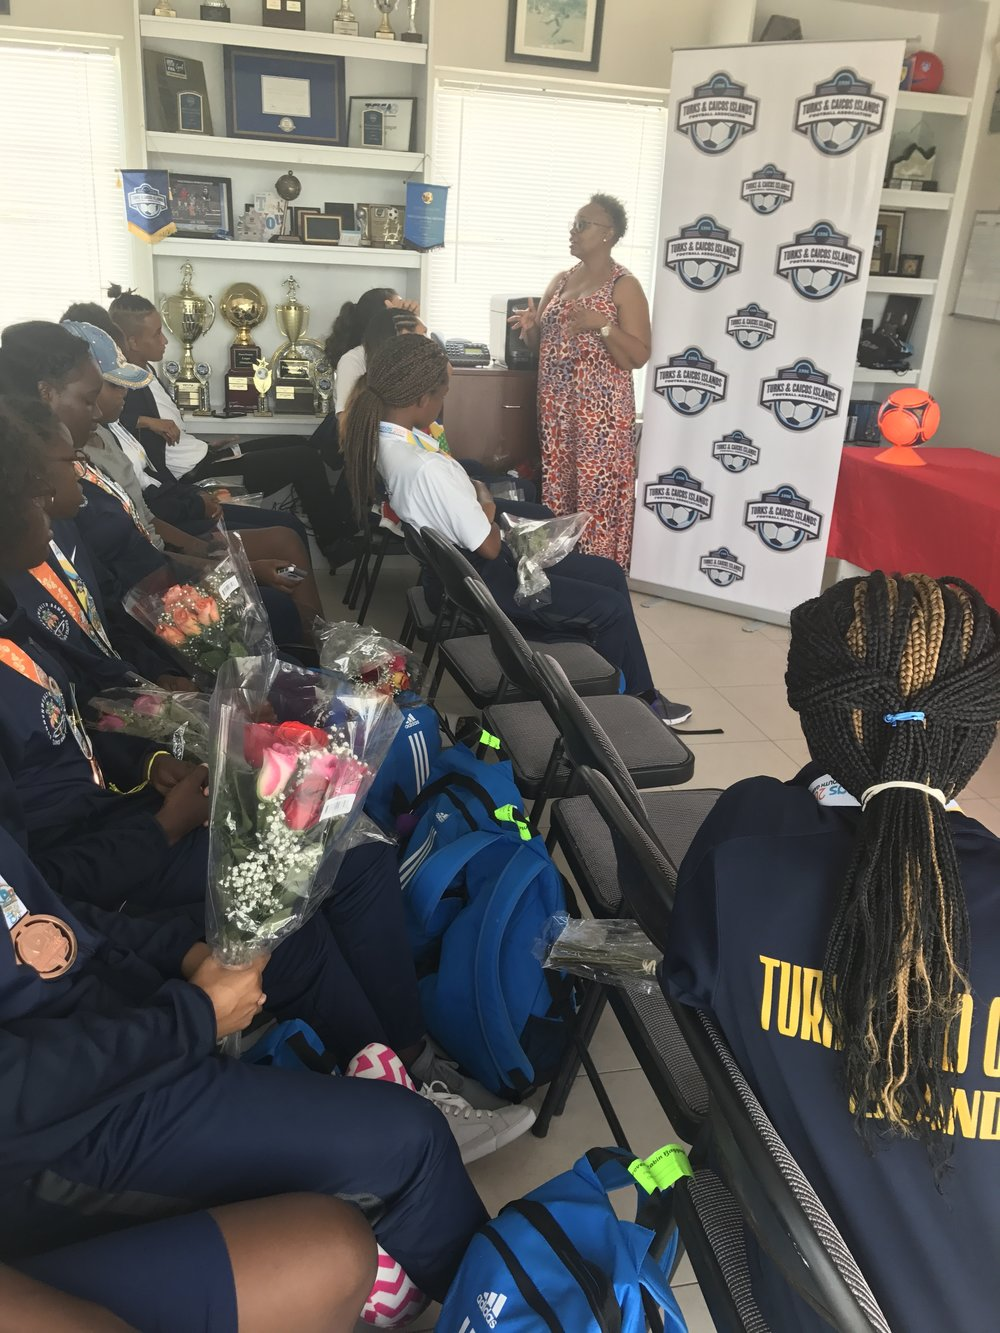 Remarks by Candace Hanchell, TCIFA Executive Director responsible for Women's Football